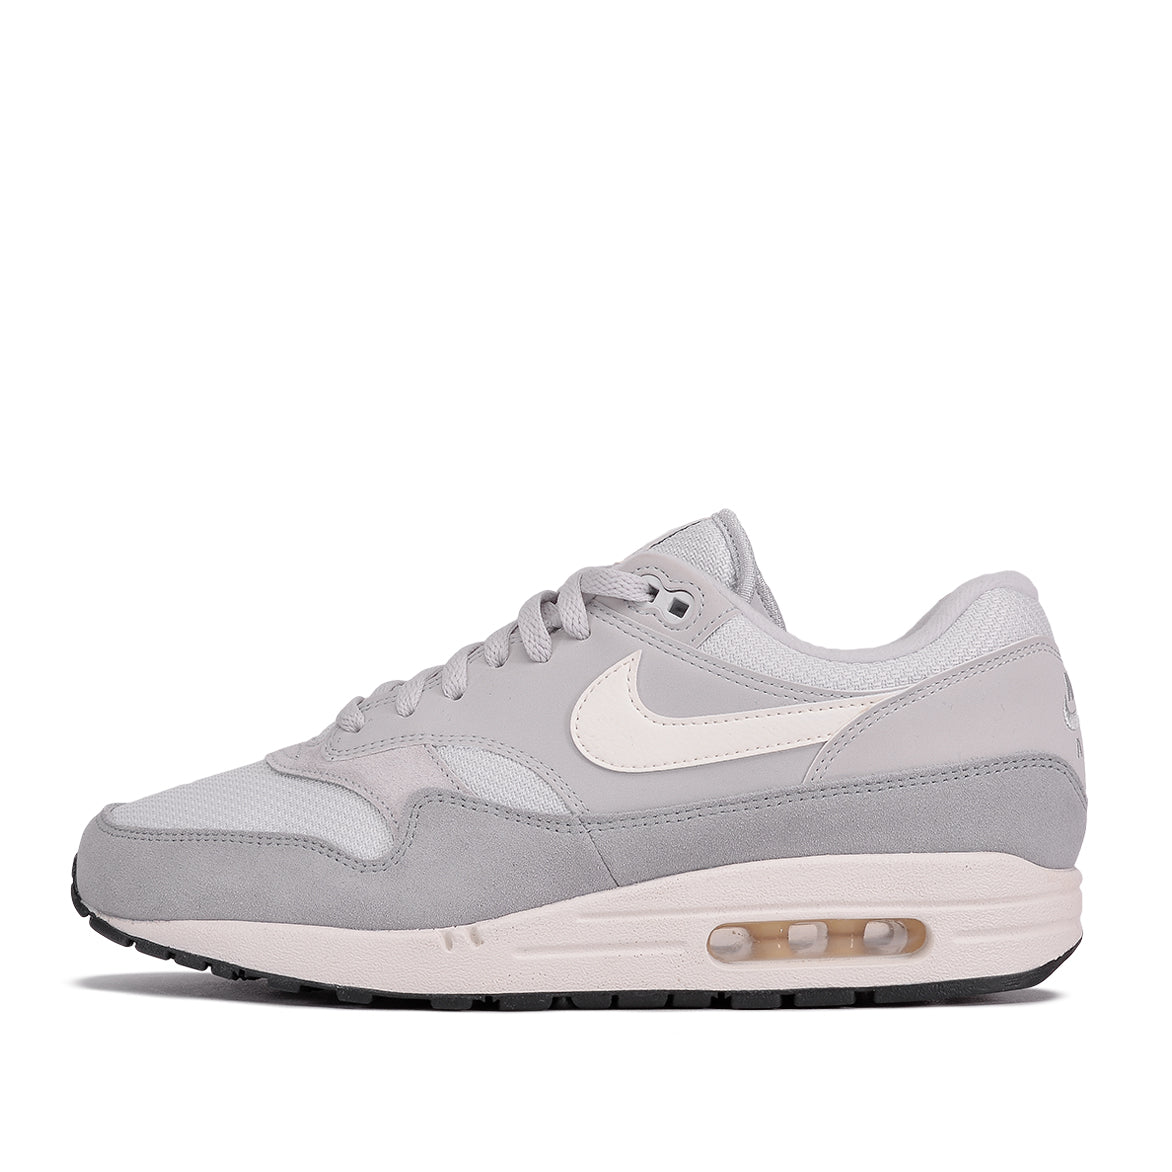 newest bfa64 cc9fe AIR MAX 1 - VAST GREY   SAIL   WOLF GREY. NIKE